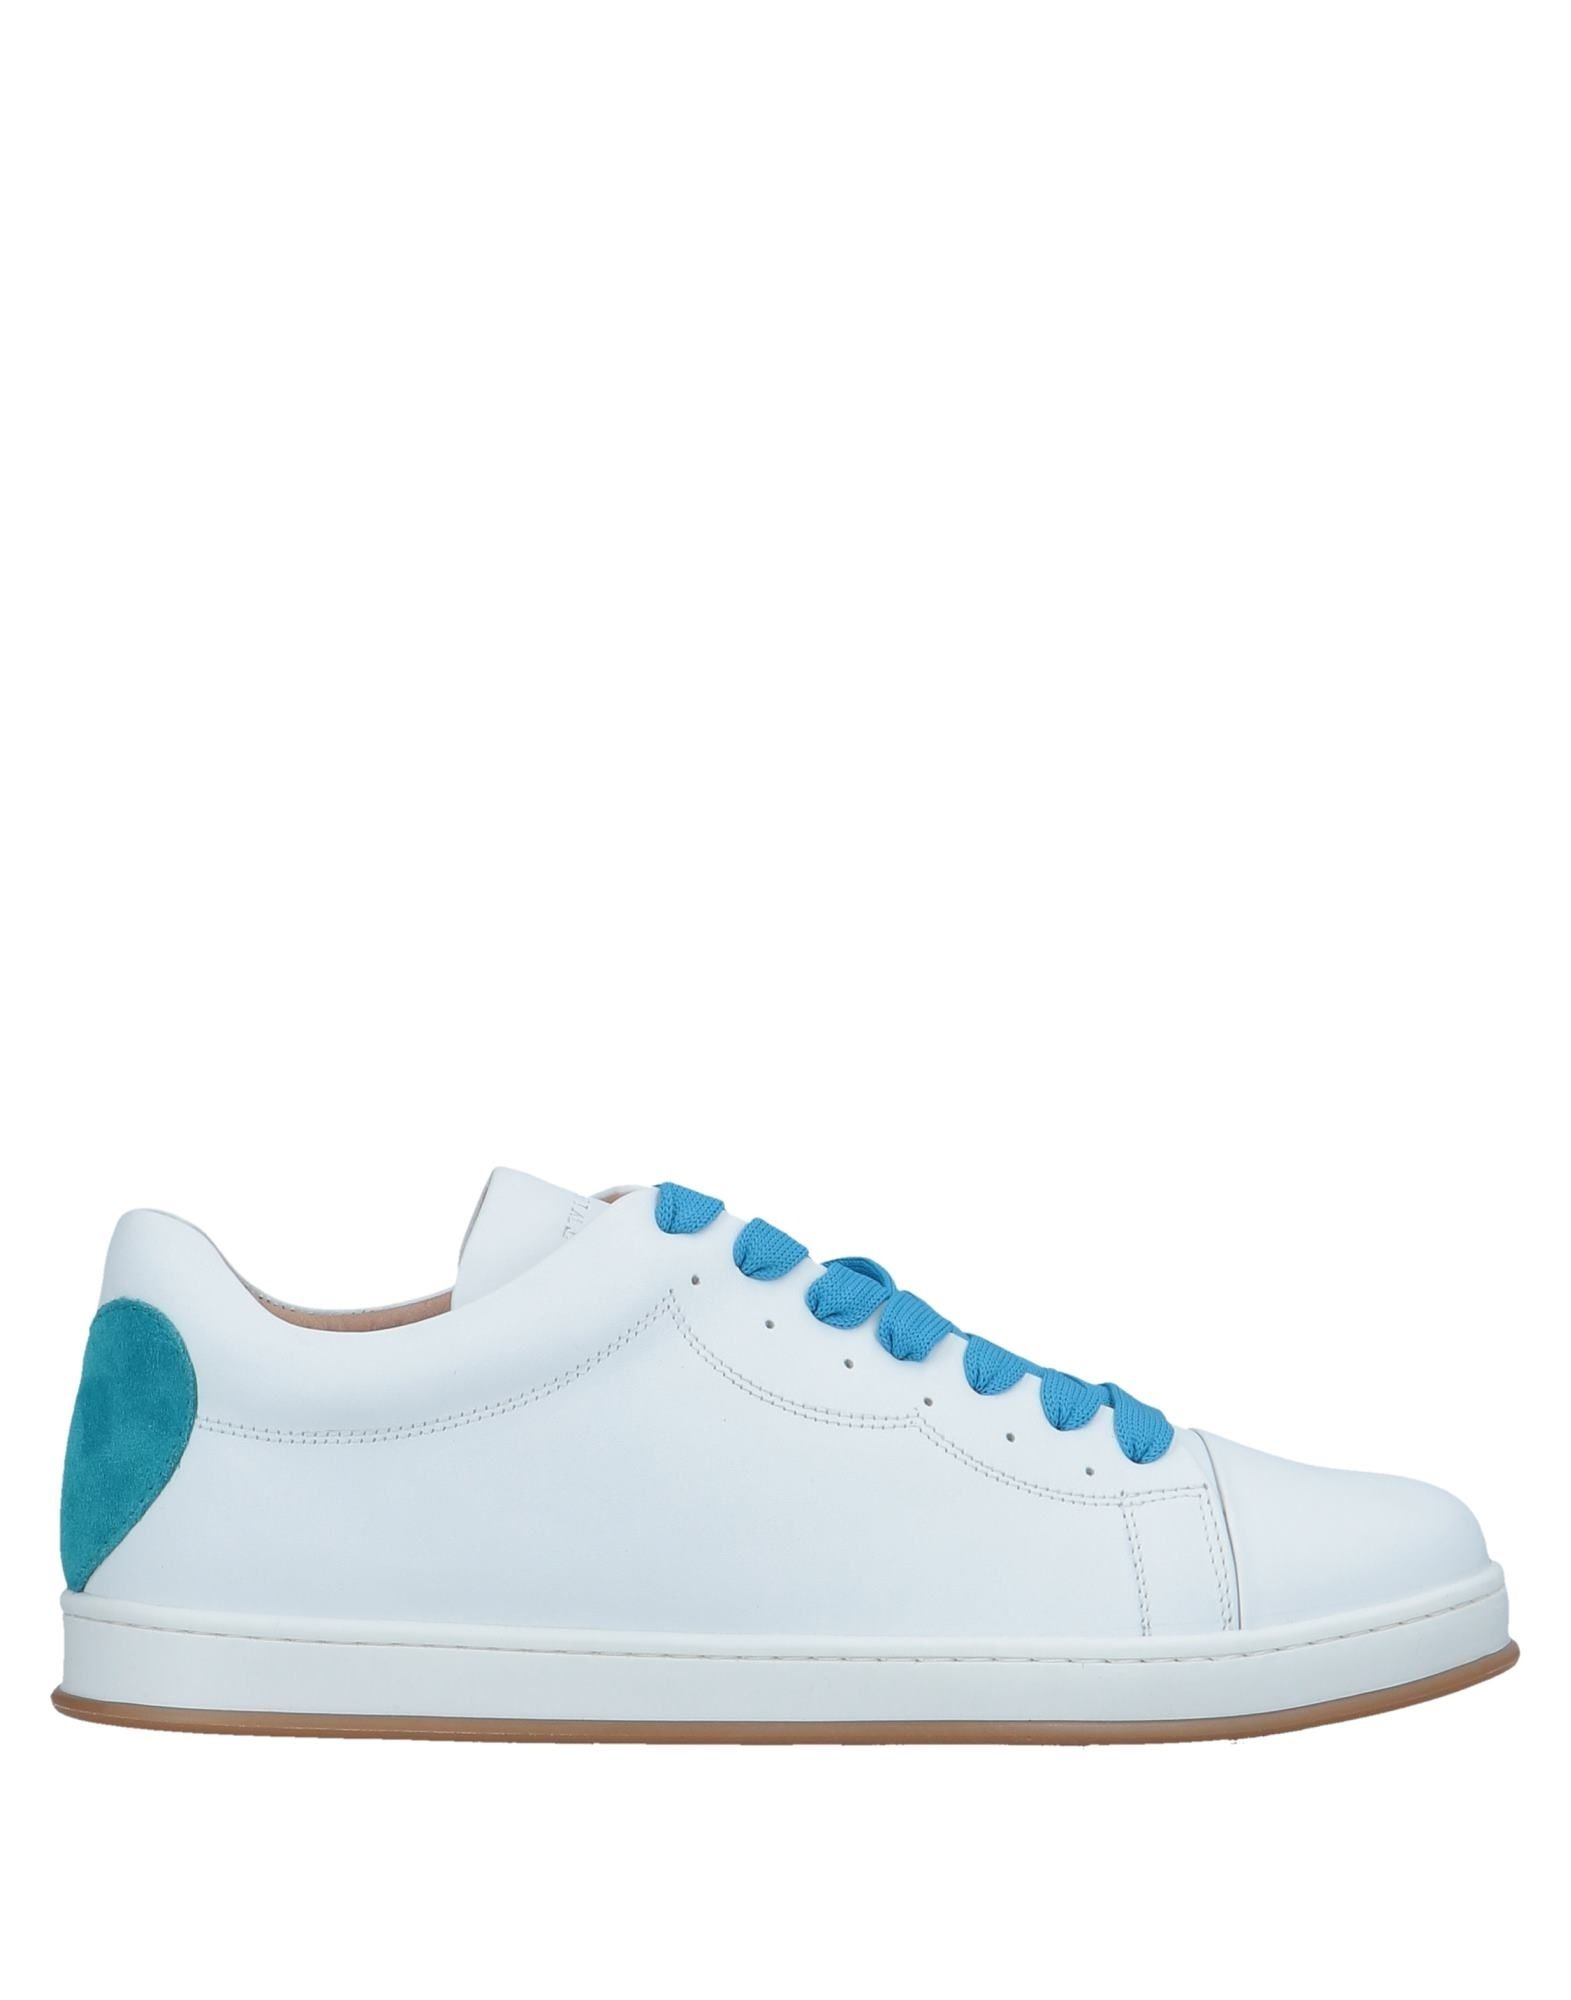 Twin-Set Simona Barbieri Sneakers - Women Twin-Set on Simona Barbieri Sneakers online on Twin-Set  Canada - 11554354NL cef3a0